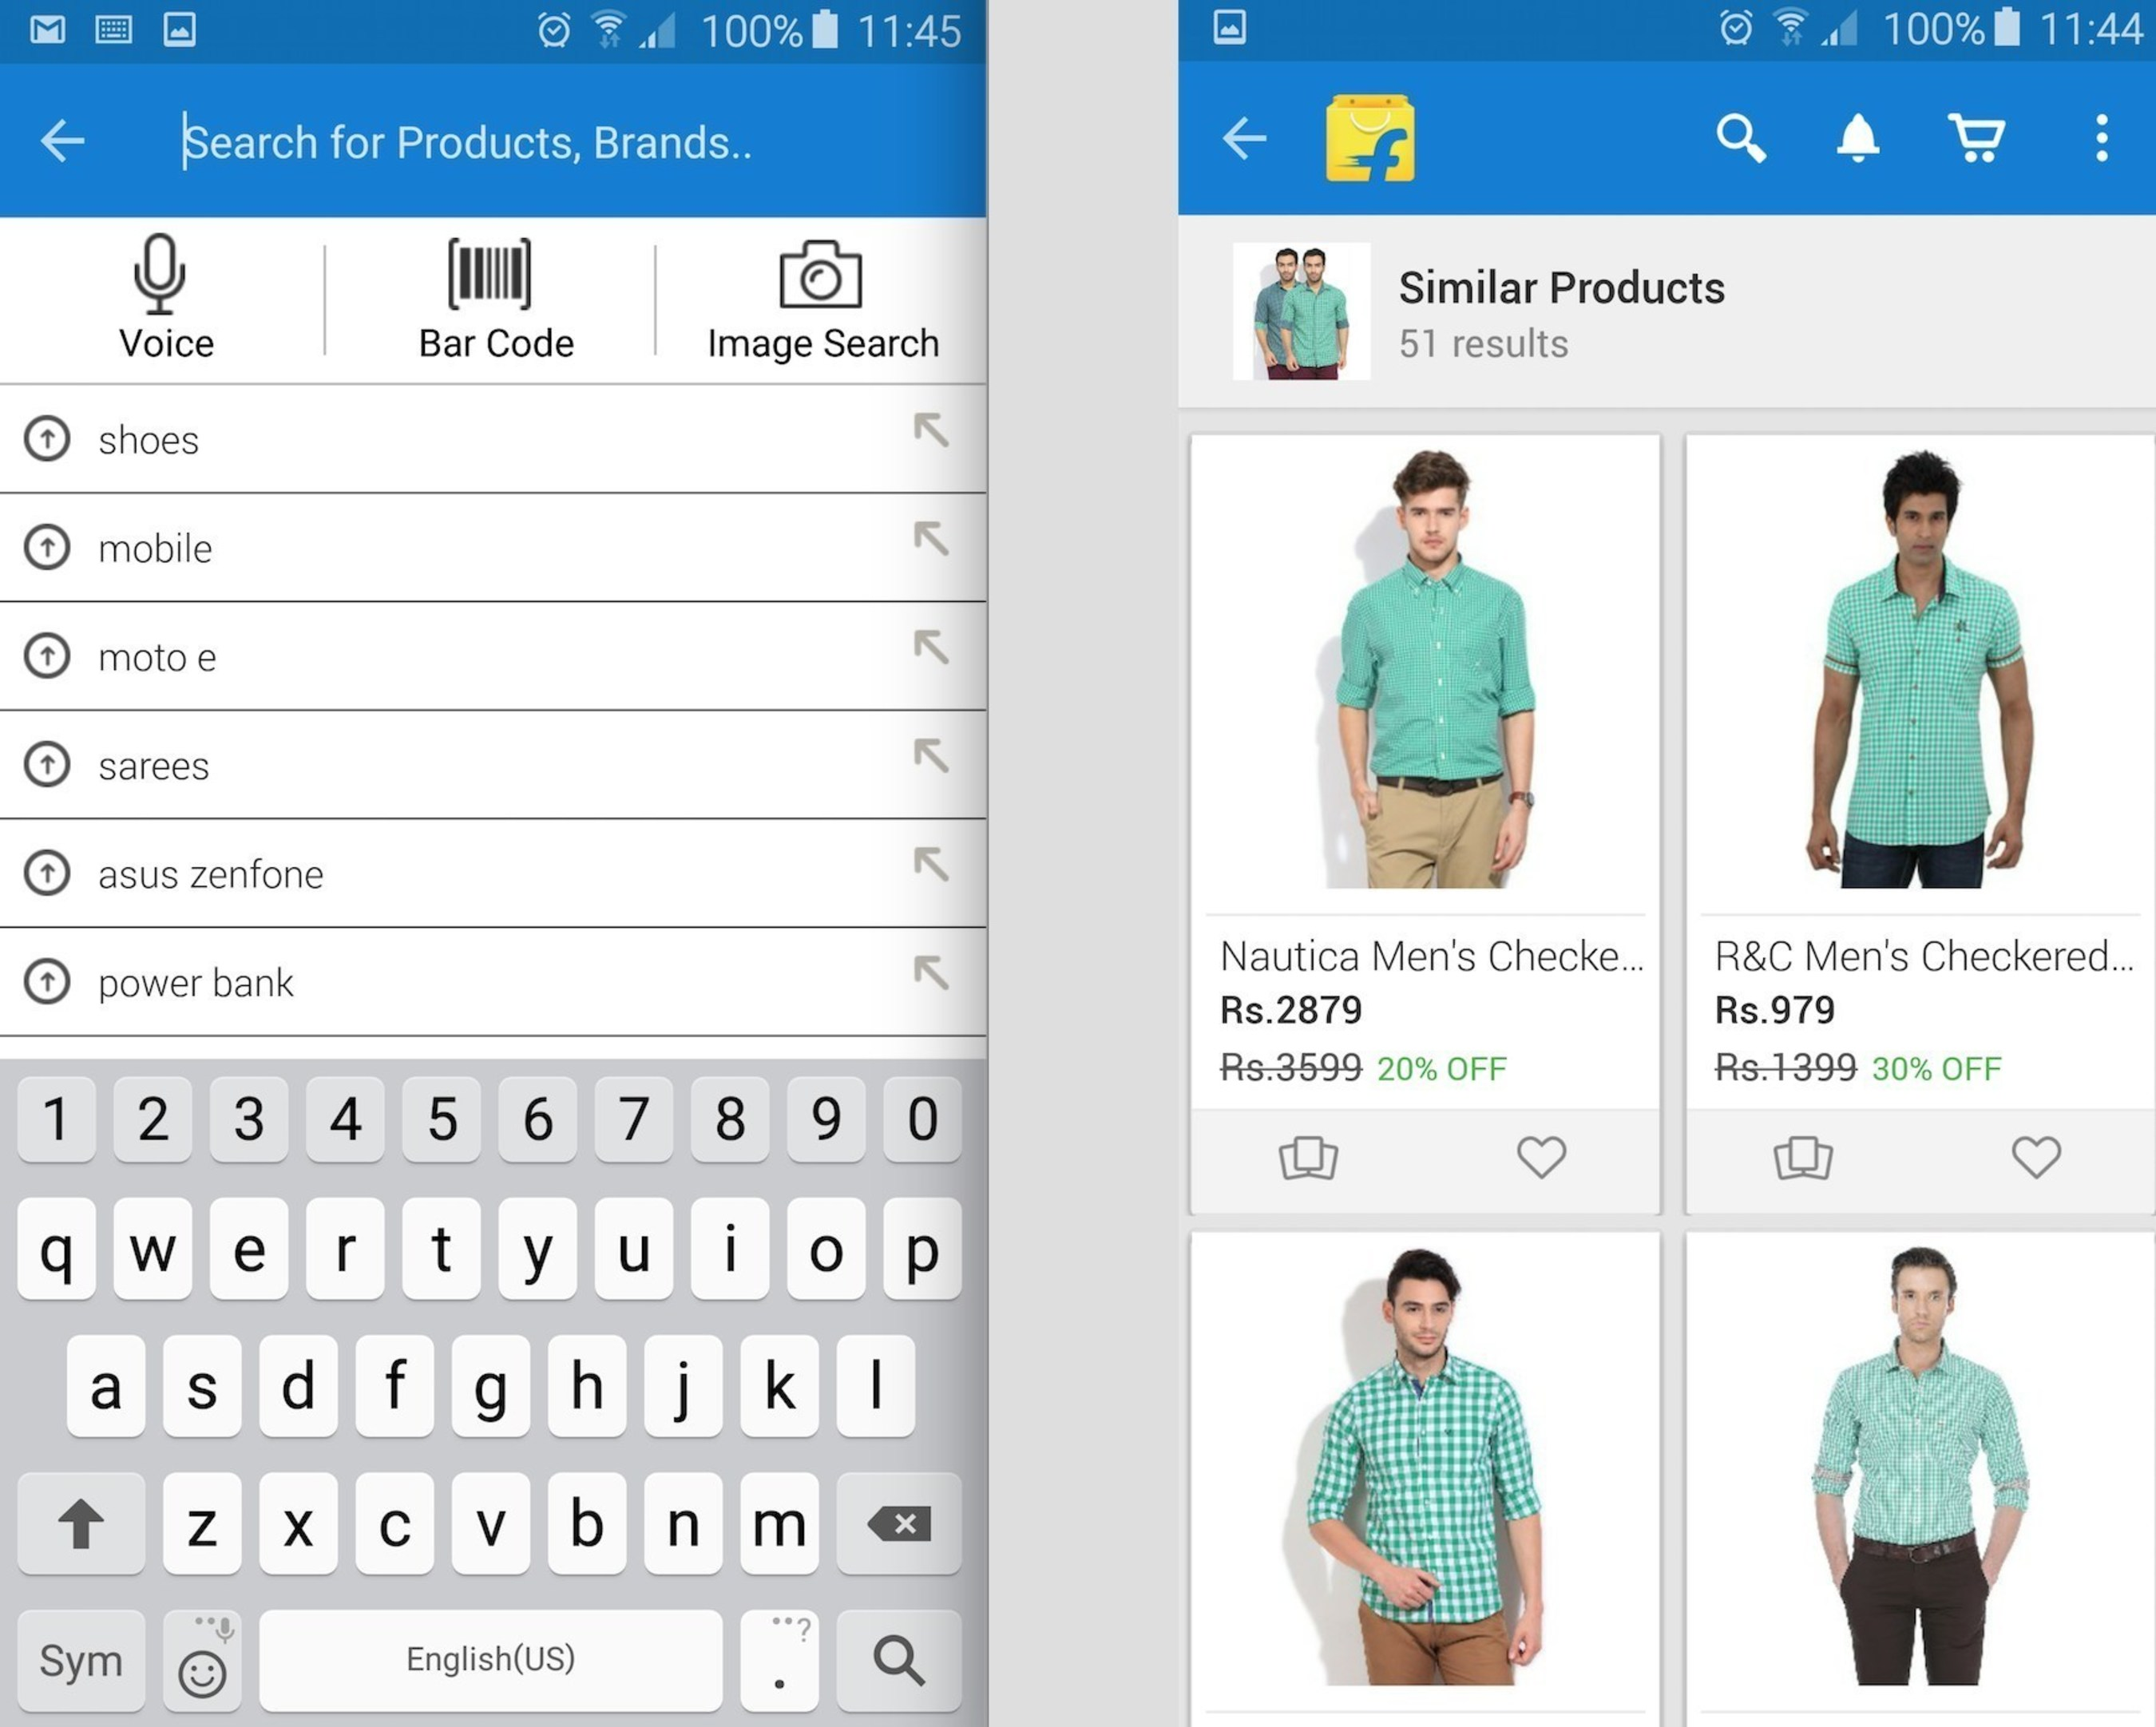 ViSenze Partners with Flipkart to Bring Image Search to Mobile Shoppers in India